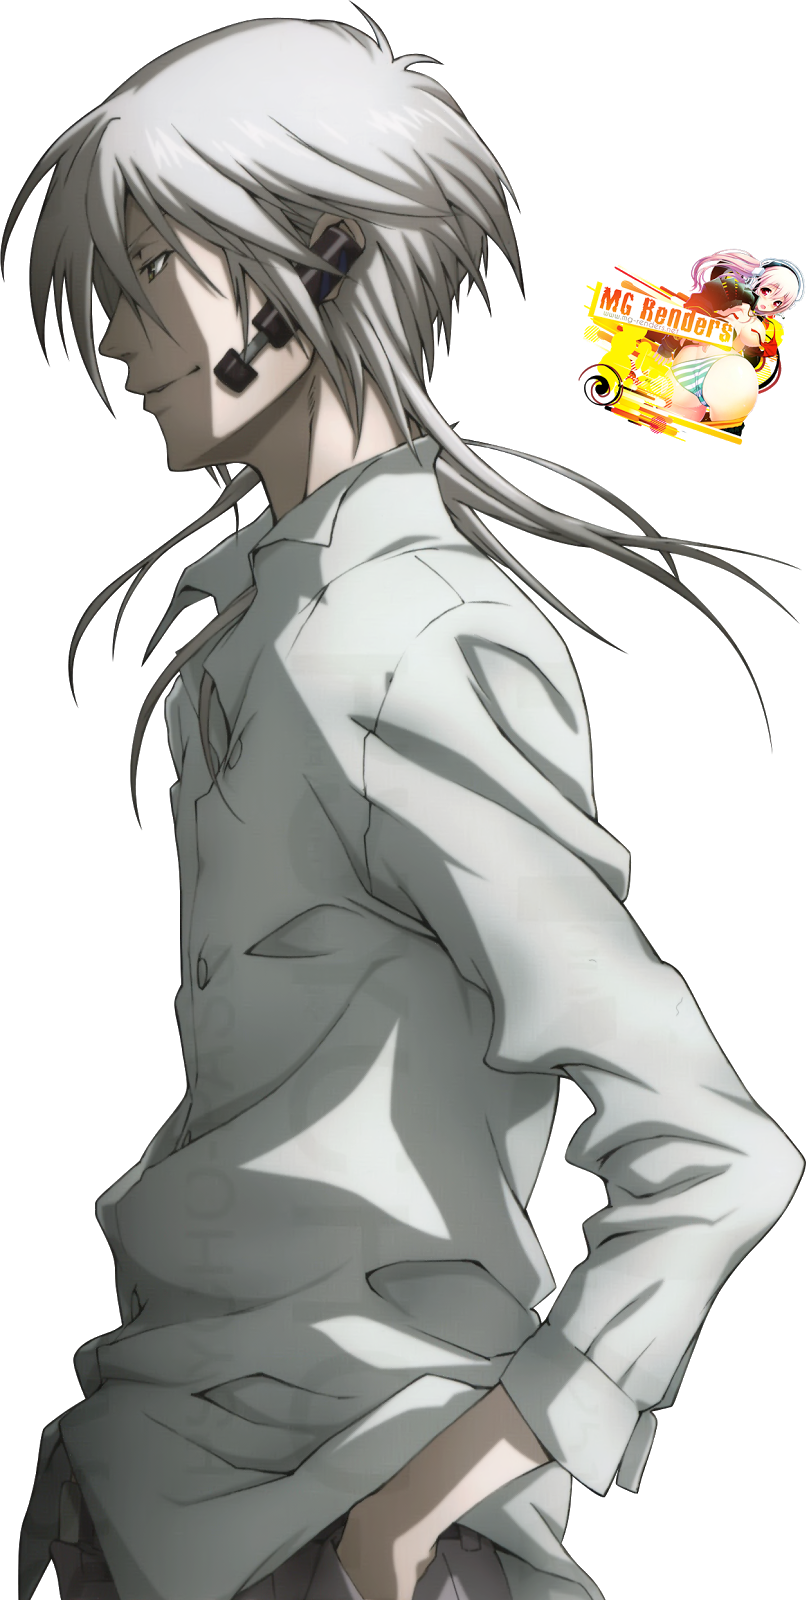 Tags: Anime, Render,  Makishima Shougo,  Psycho-Pass, PNG, Image, Picture